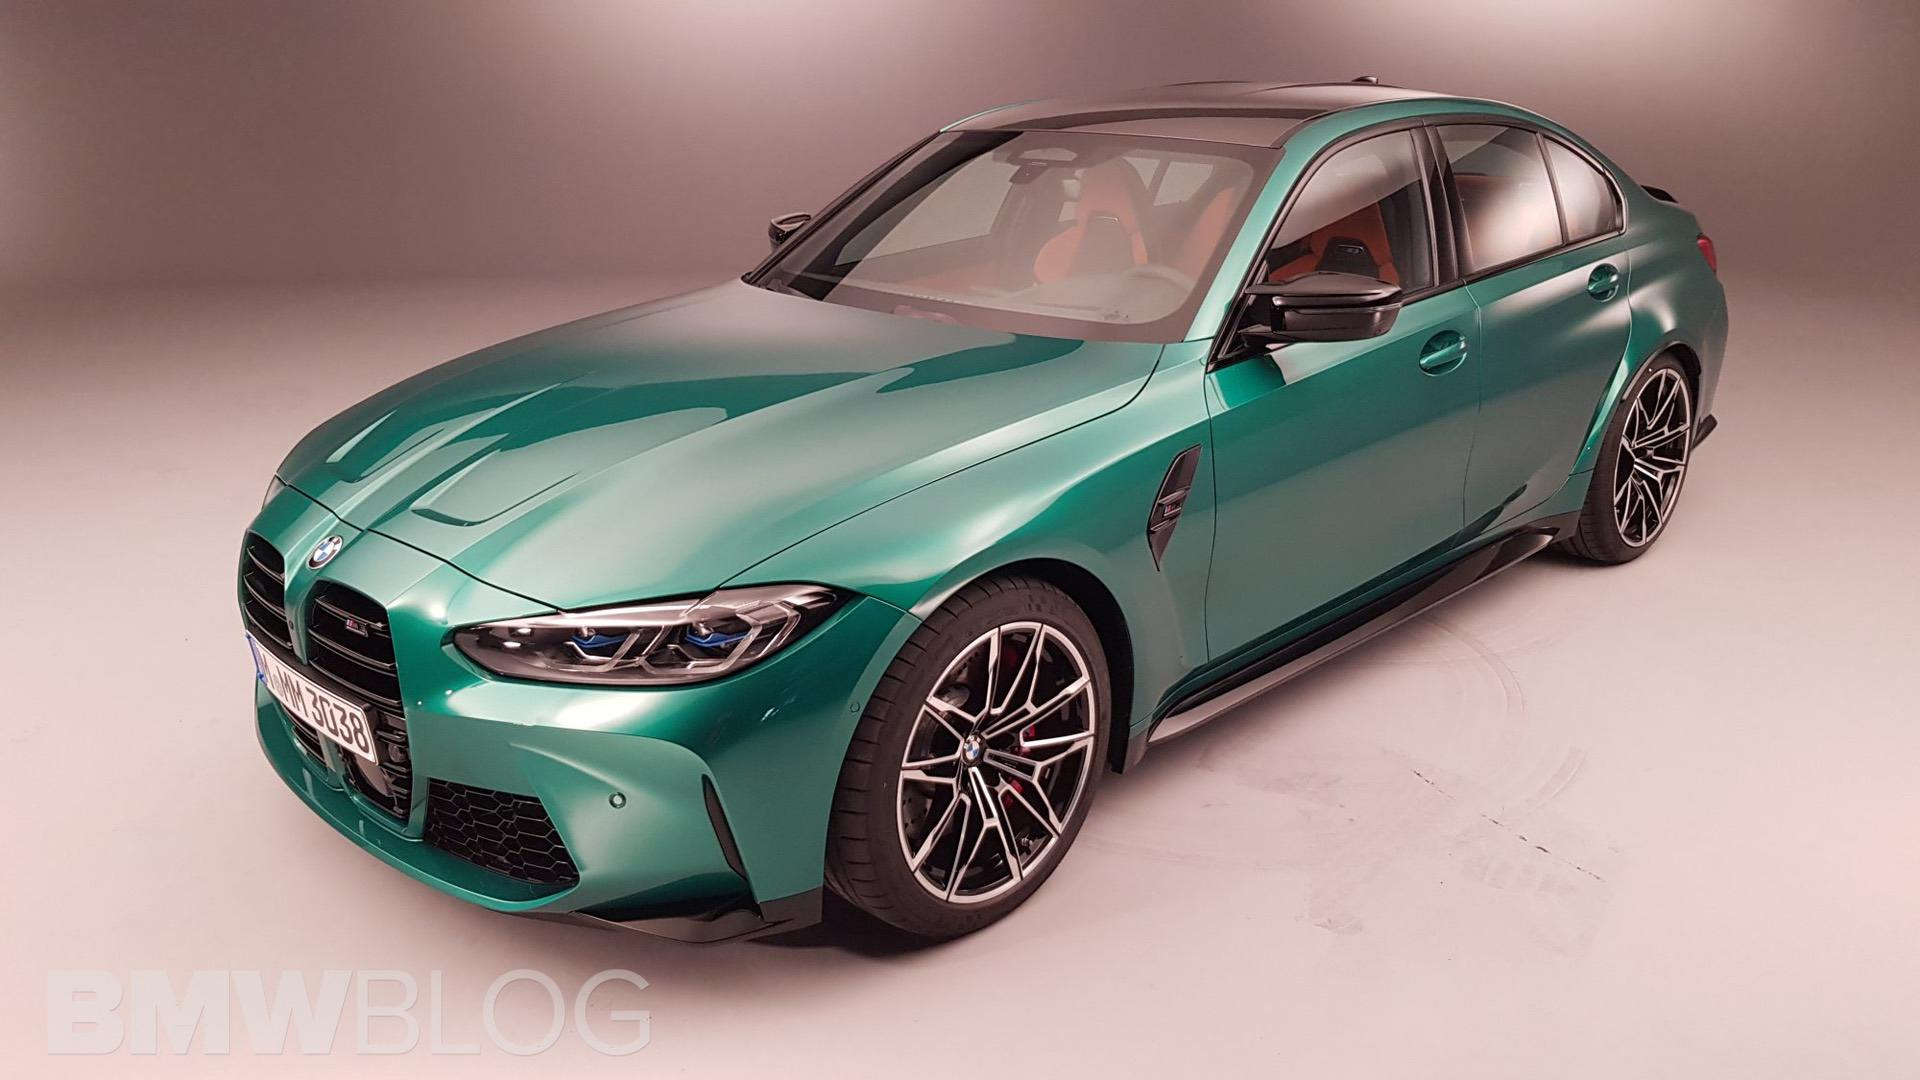 Top 20 Things To Know About The New Bmw G80 M3 And G82 M4 News Akmi